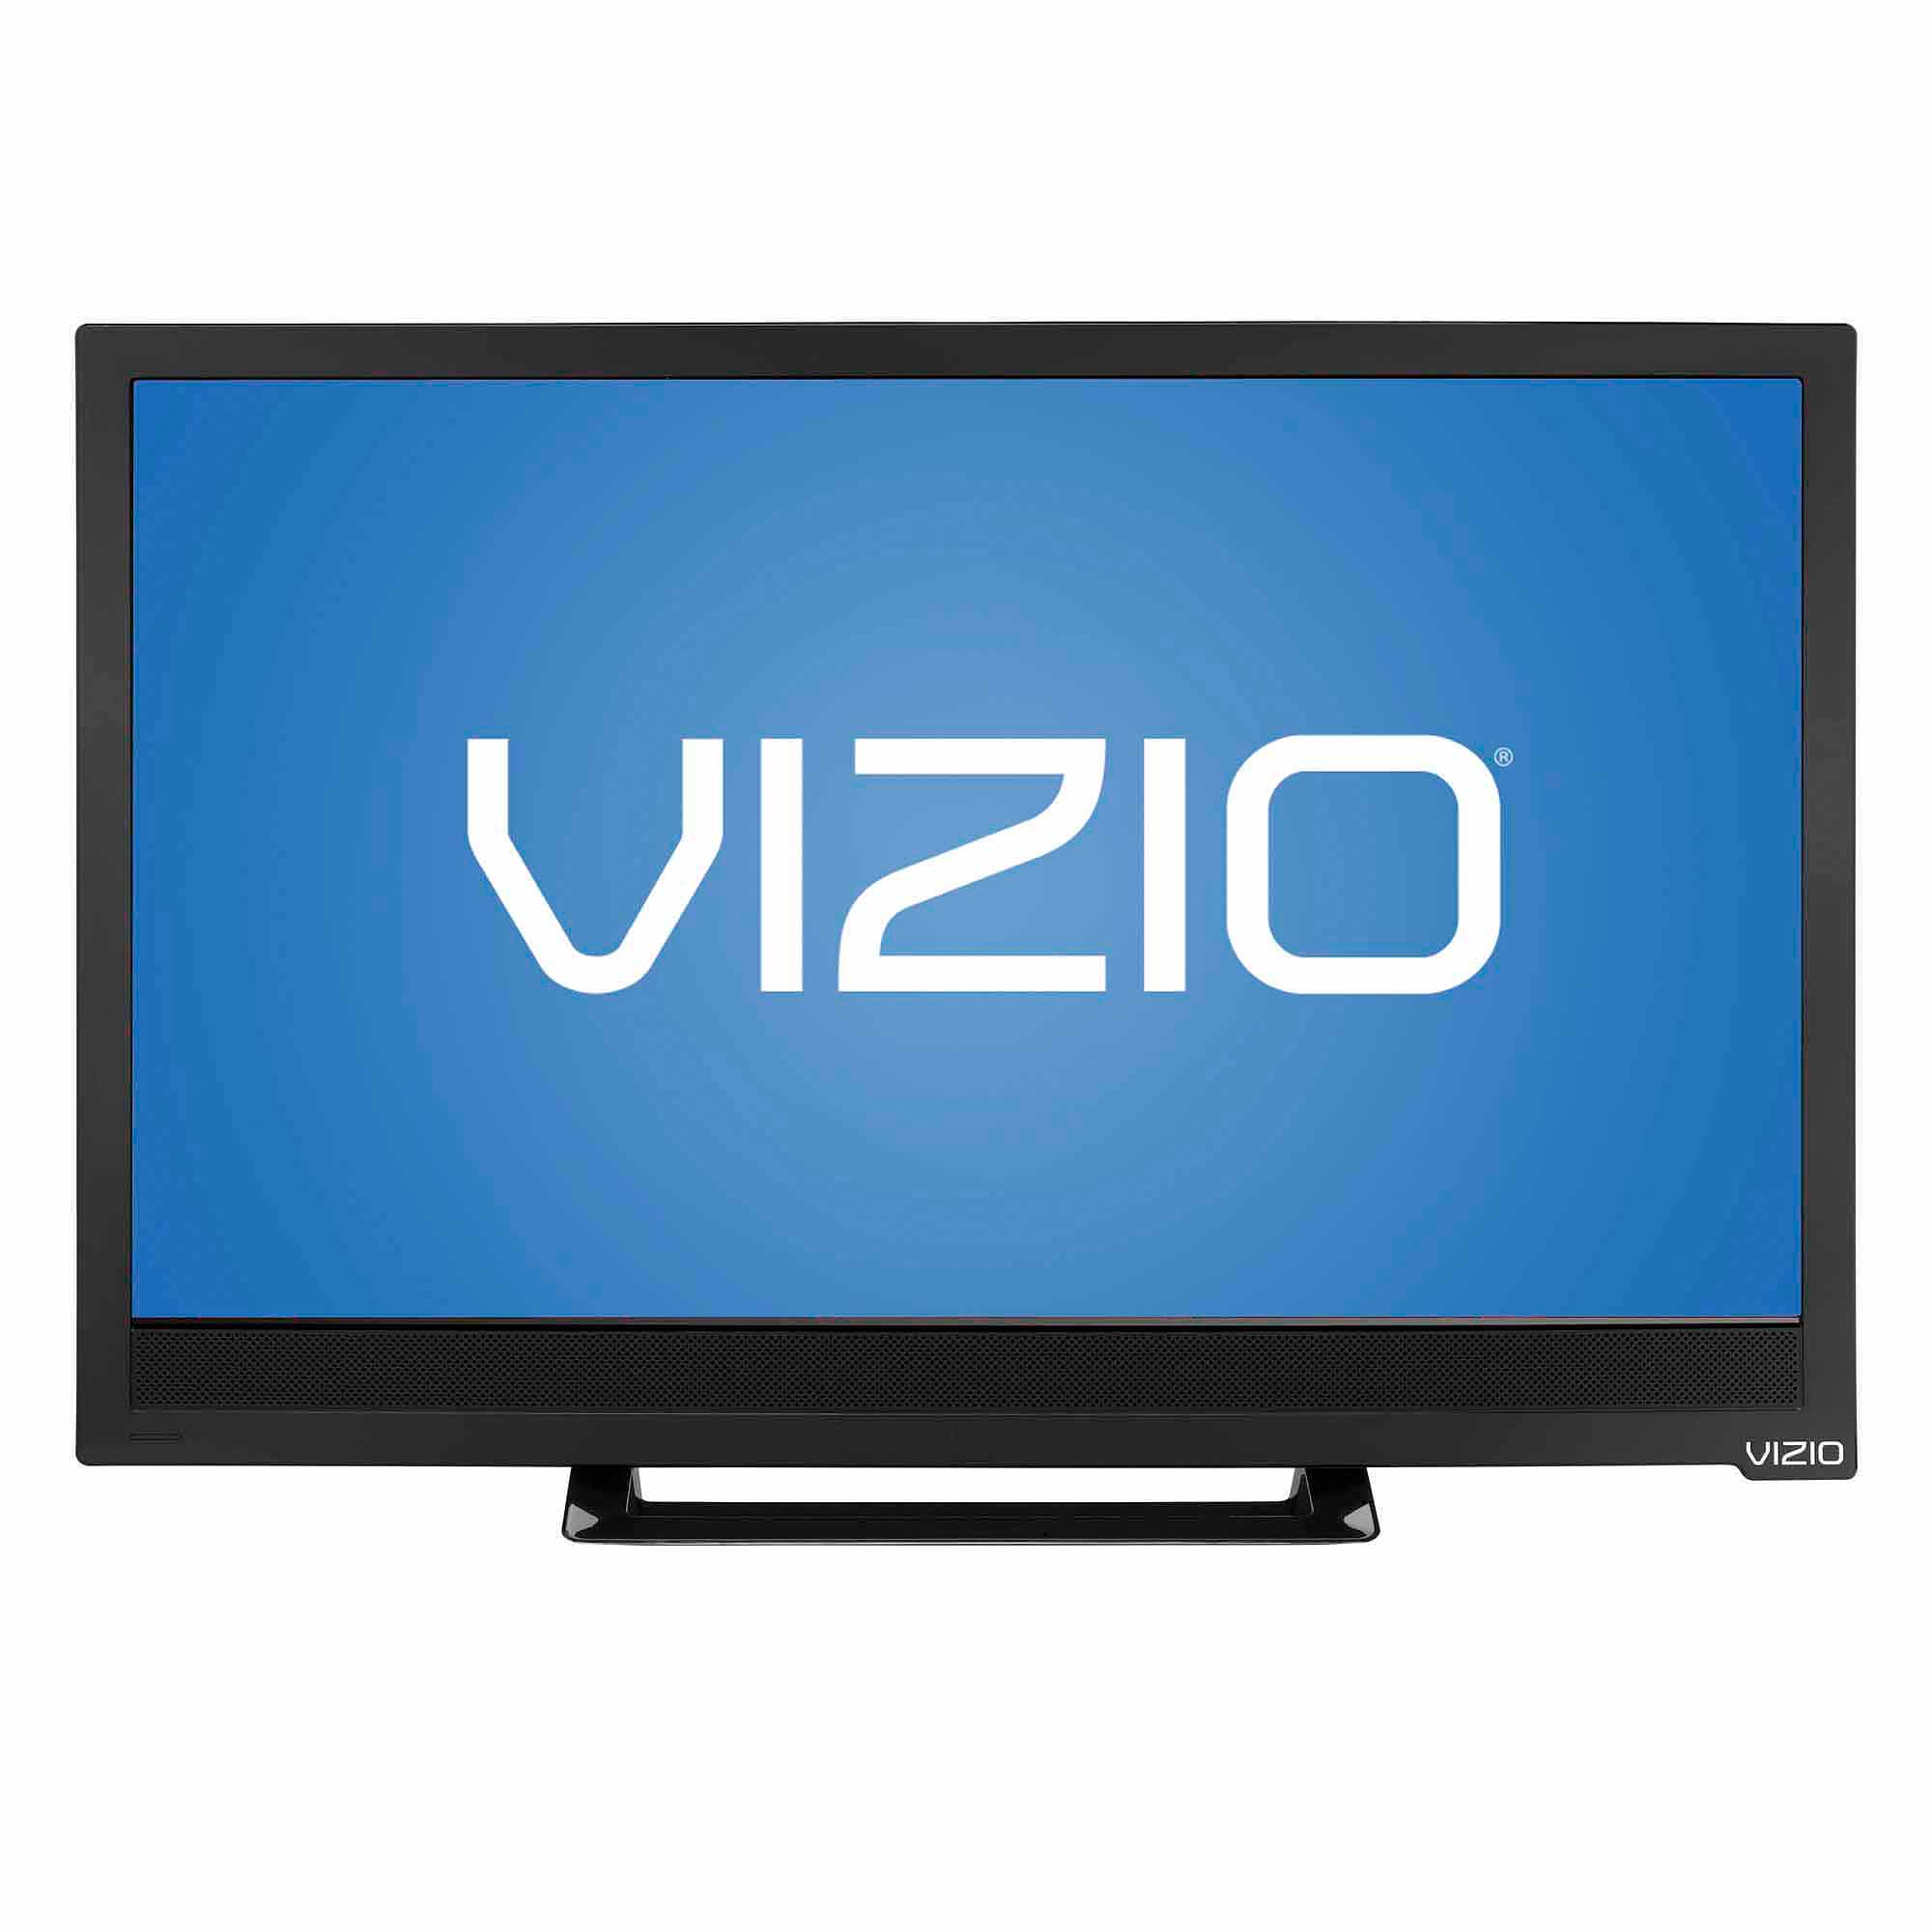 VIZIO 23-Inch 720p LED TV E231-B1 R (Refurbished)